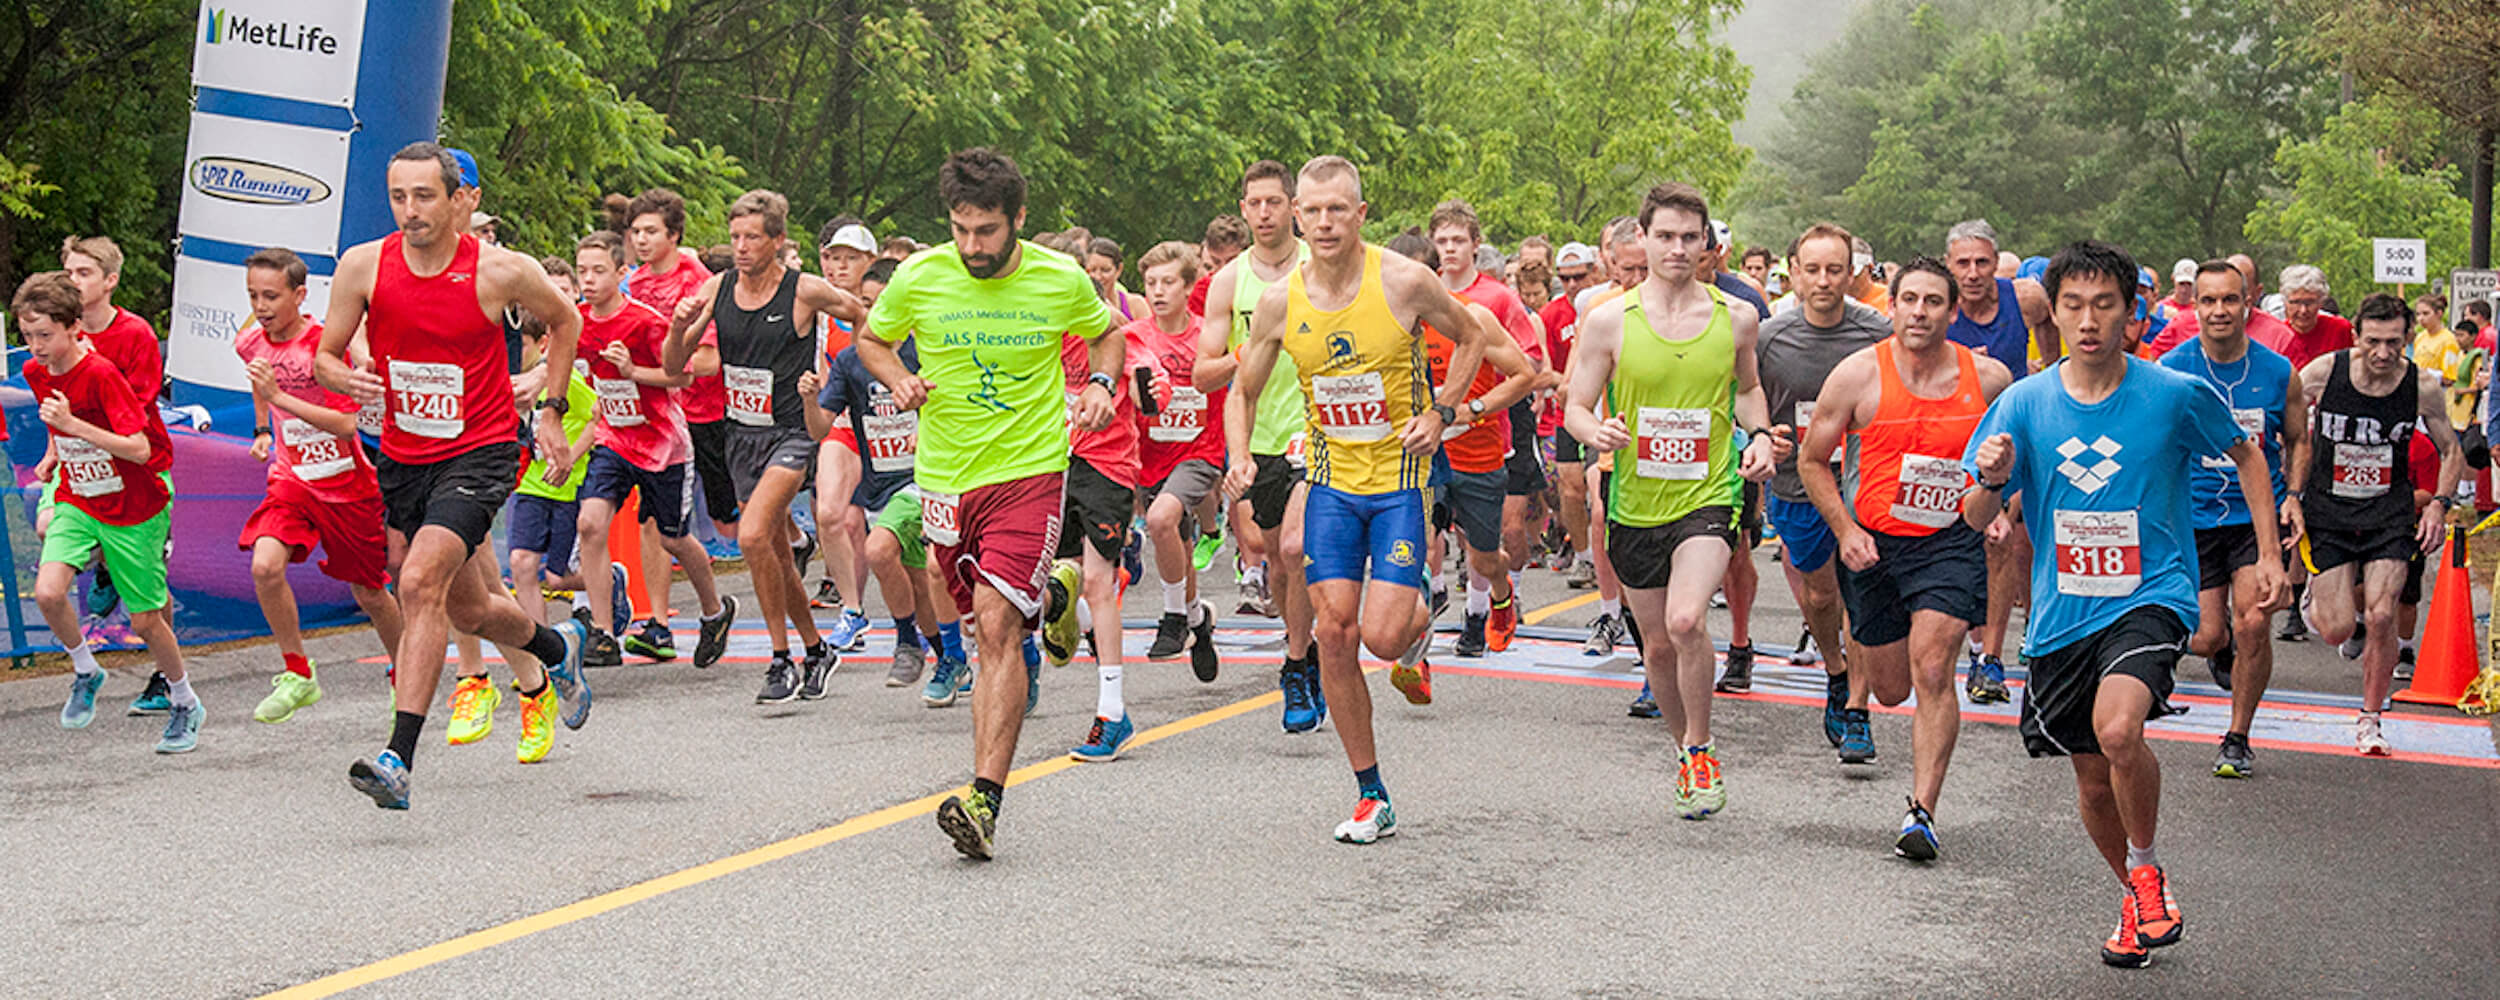 Home - The Sharon Timlin Memorial 5K Race to Cure ALS